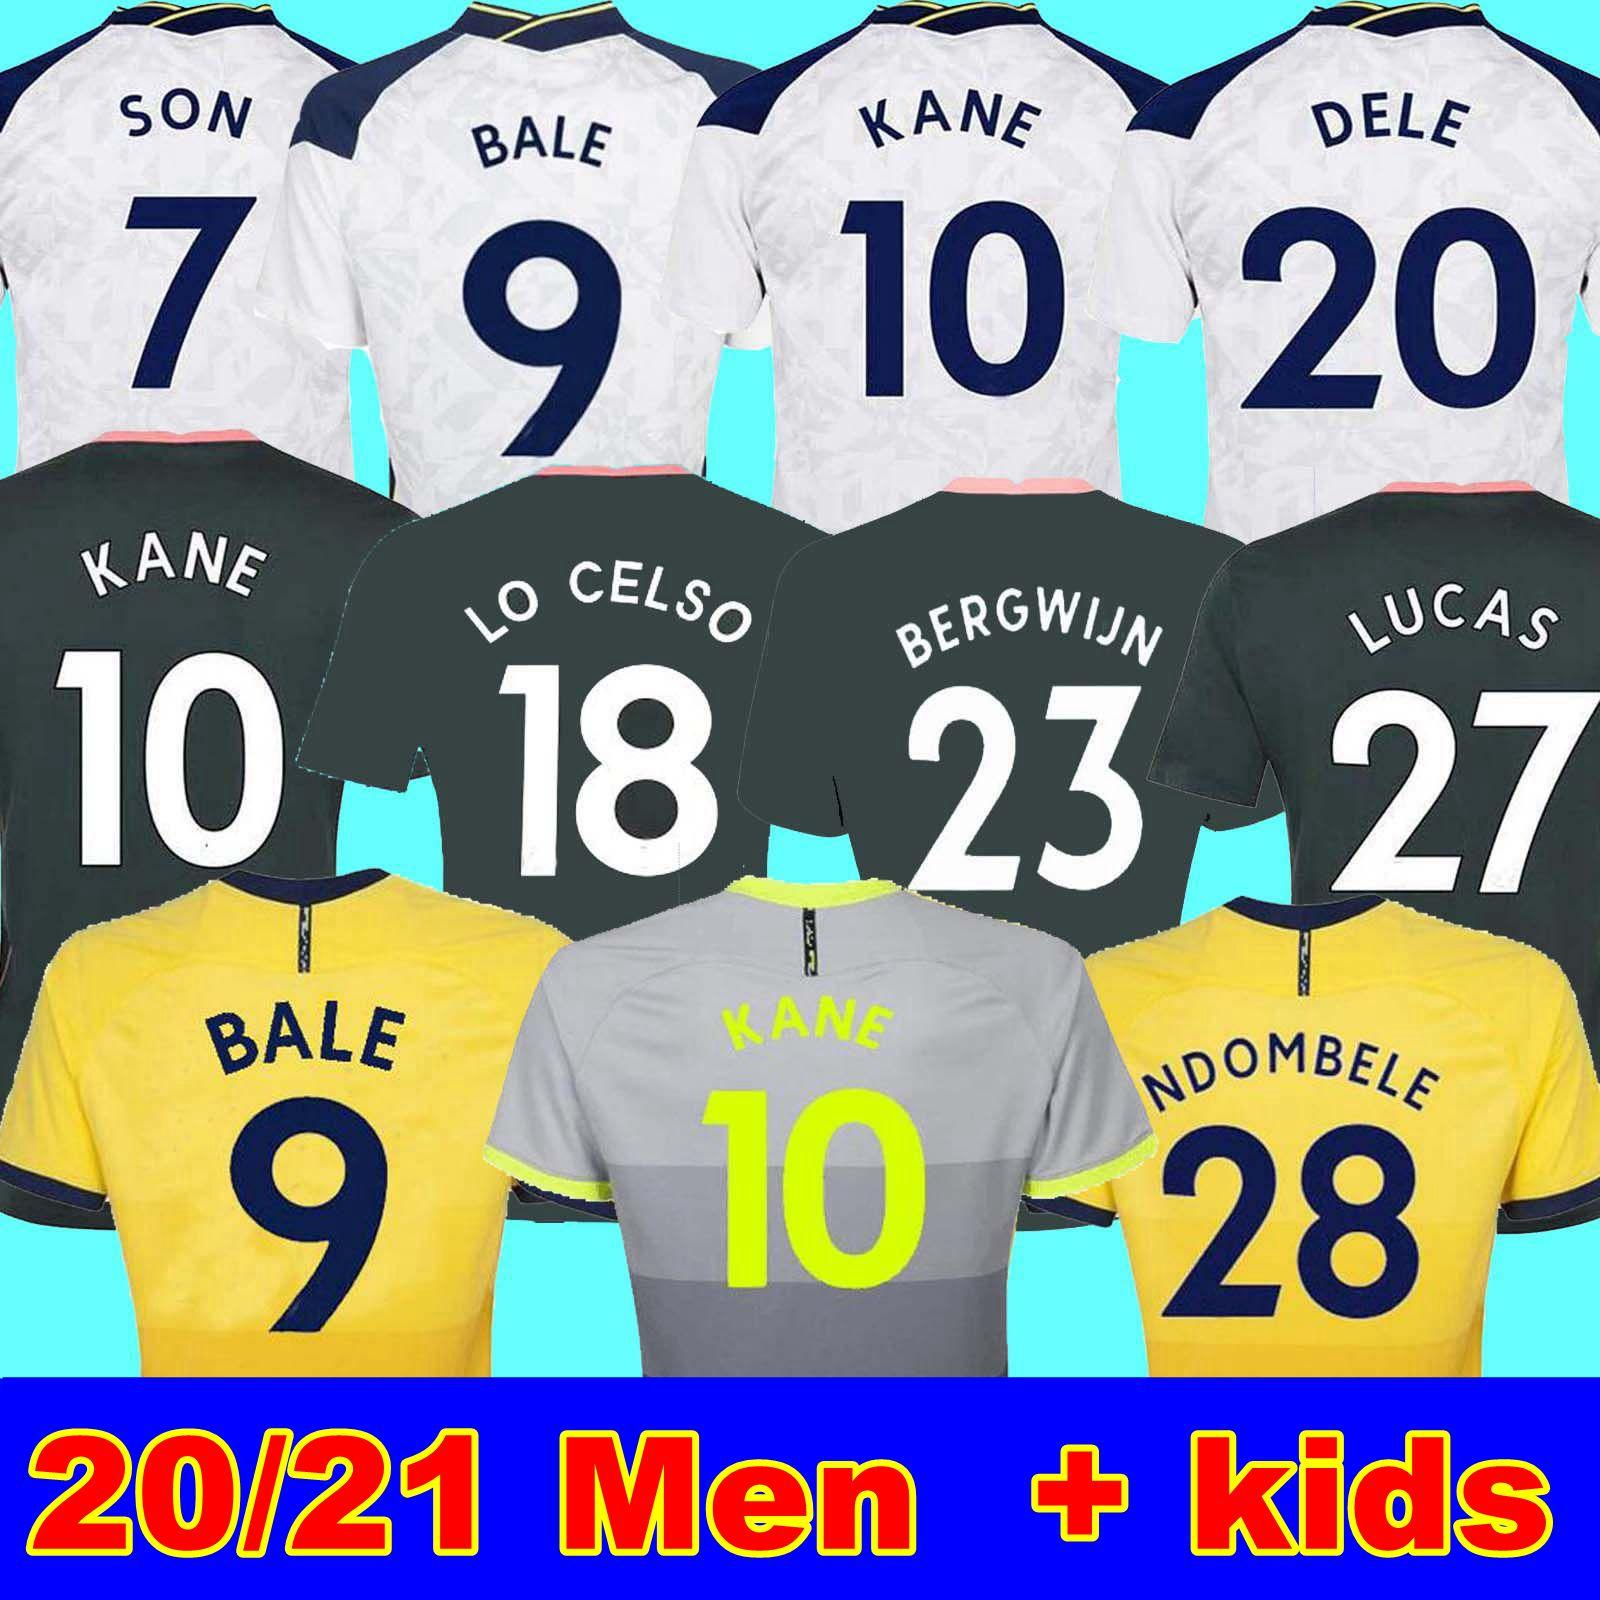 20 21 Kane Son Bergwijn Soccer Jerseys Winks 8 Lucas Dele Fourth Tottenham Football Kit قميص Bale Ndombele 4th قمم الرجال الاطفال مجموعات الجوارب